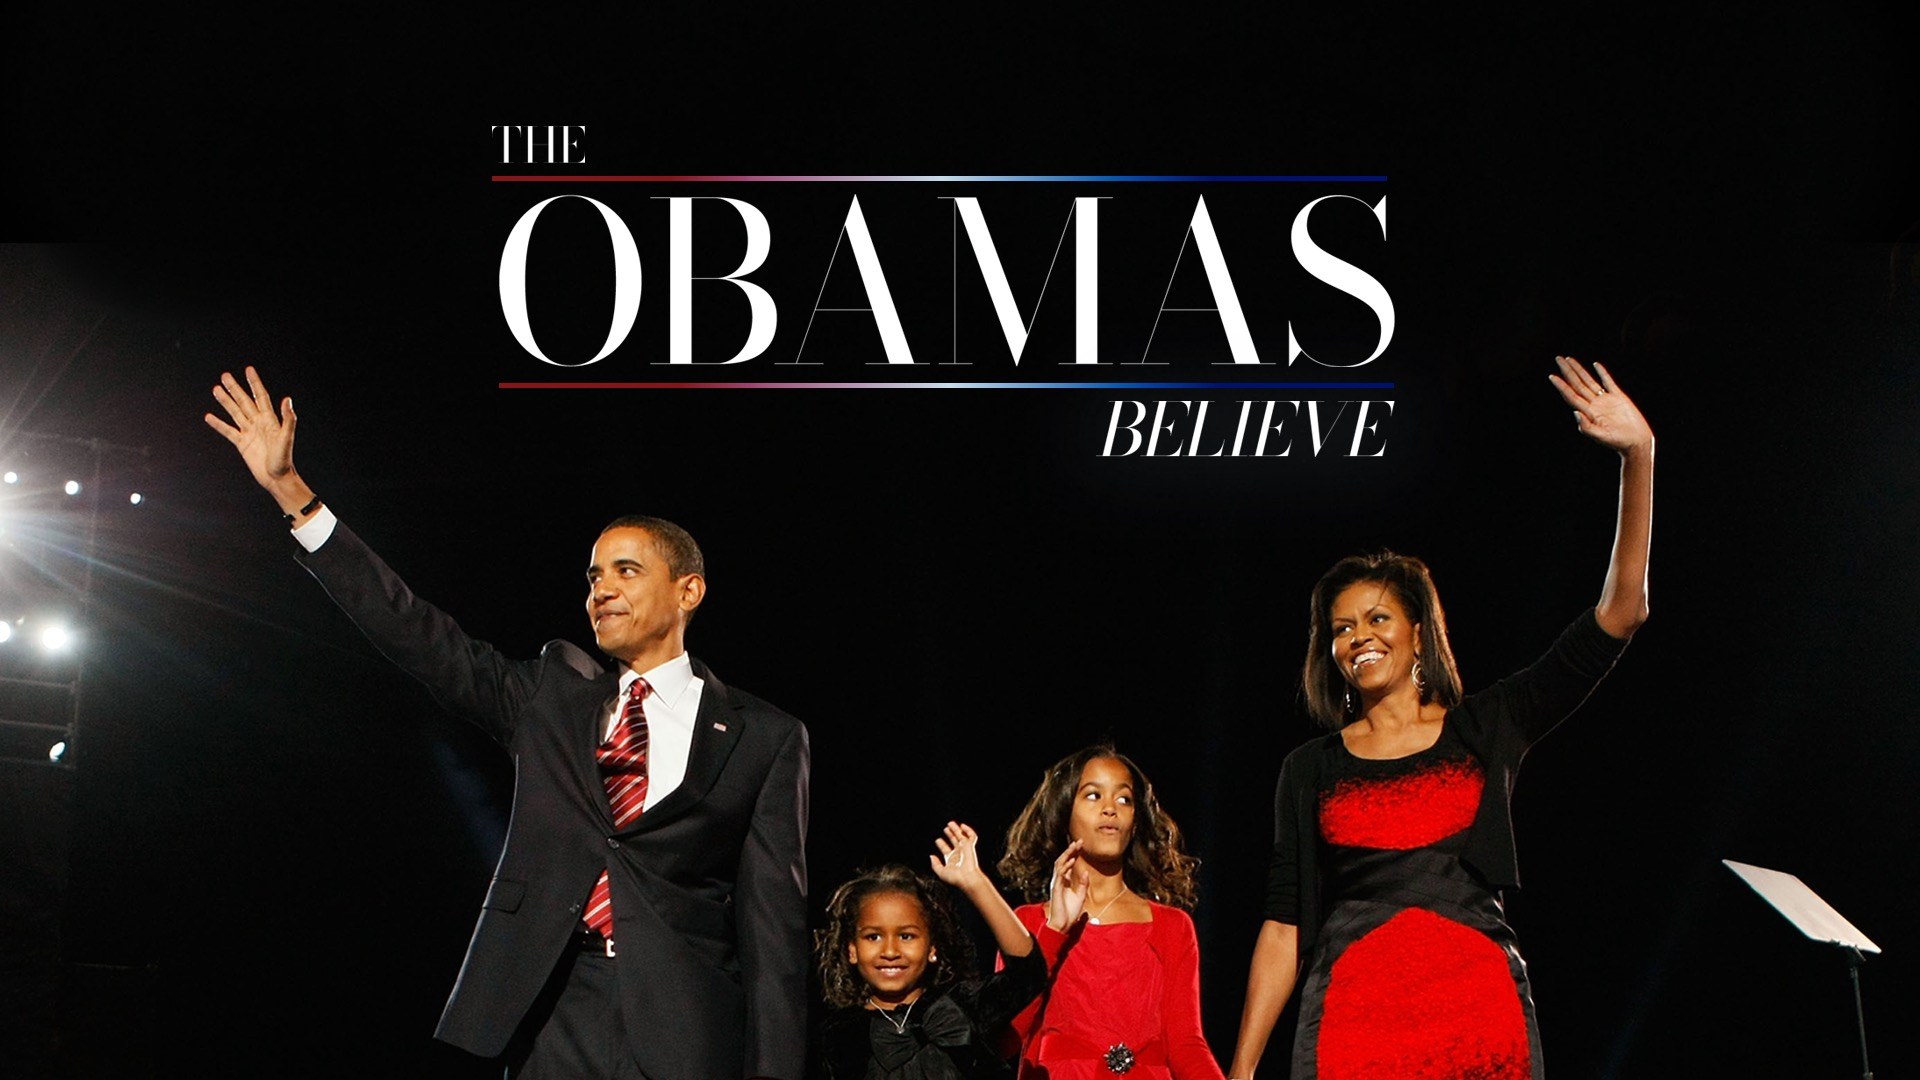 The Obamas: Believe